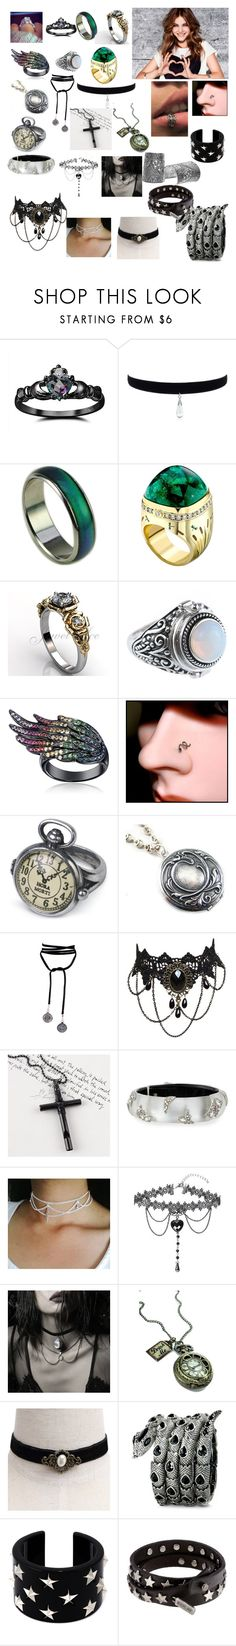 """Joyas de Zatanna"" by ryanisobelle on Polyvore featuring moda, Justin Bieber, Fidelity, Theo Fennell, Verragio, AS29, Trend Cool, Alexis Bittar, REGALROSE y RED Valentino"